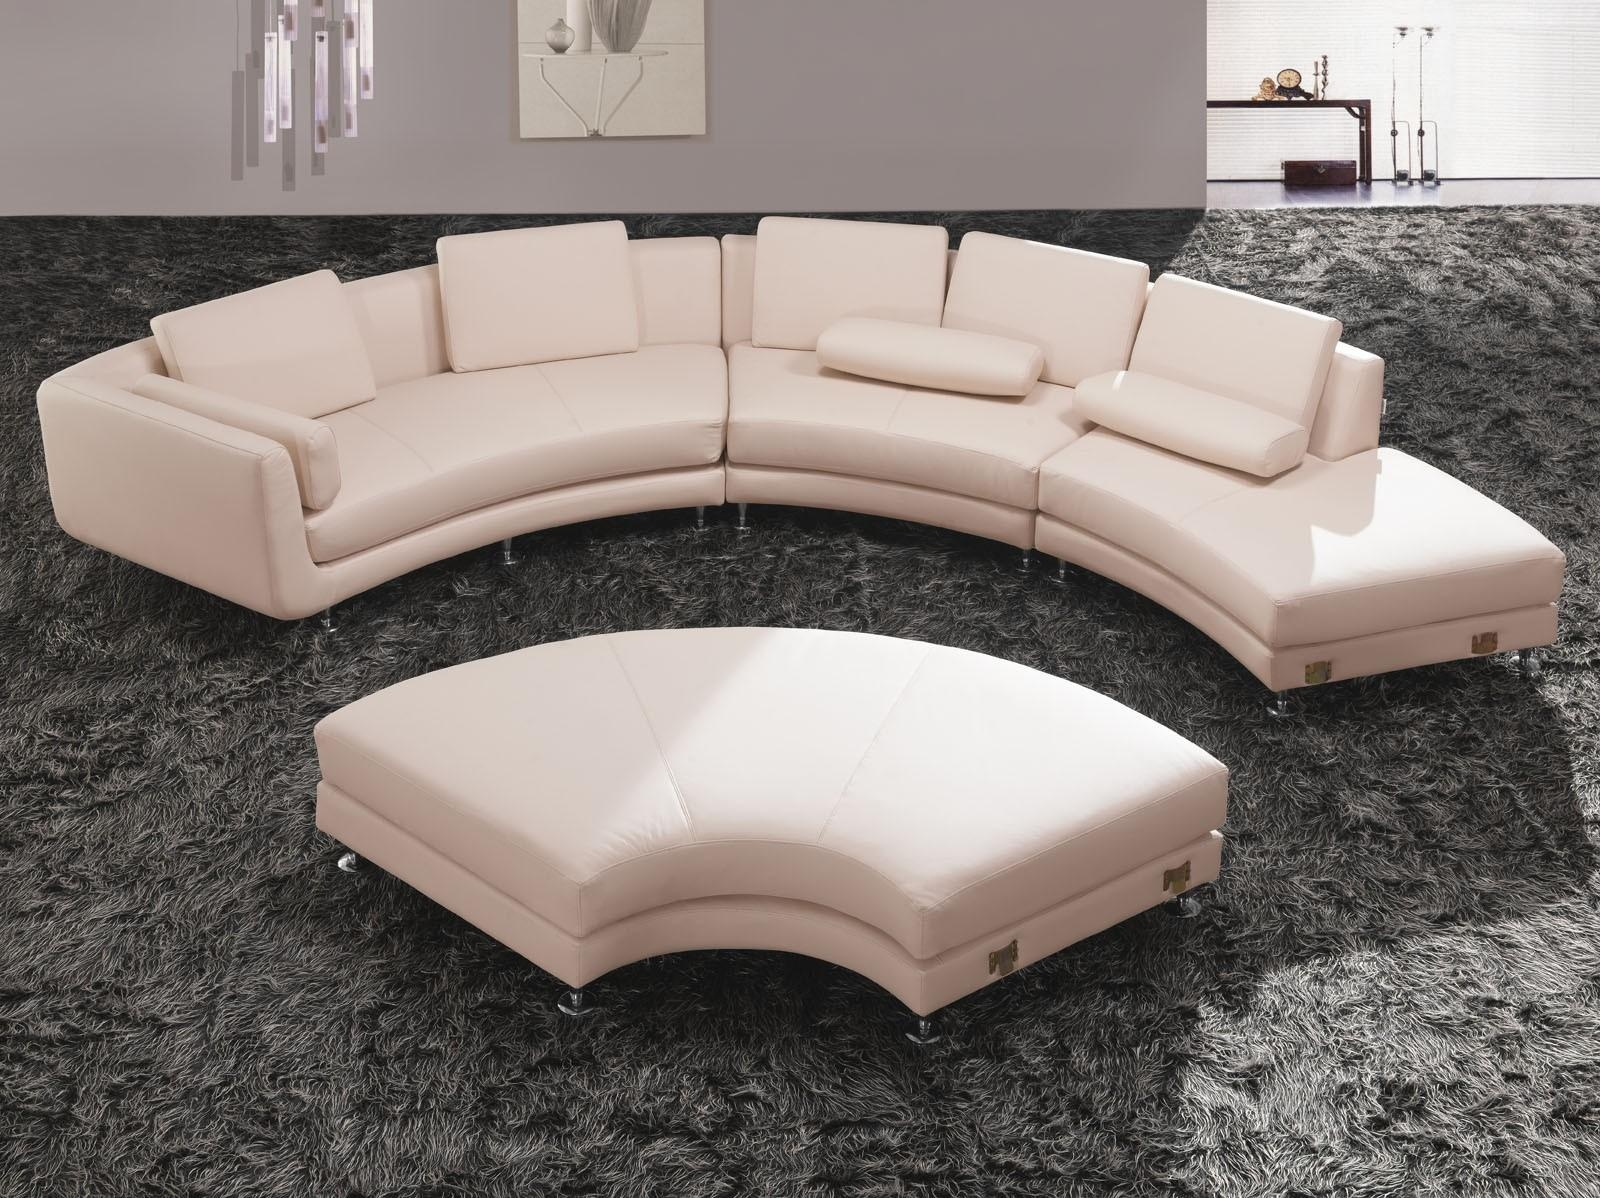 Sofas Center : Stirring Circlectional Sofa Photo Concept Circular Within Circle Sofas (Image 20 of 20)